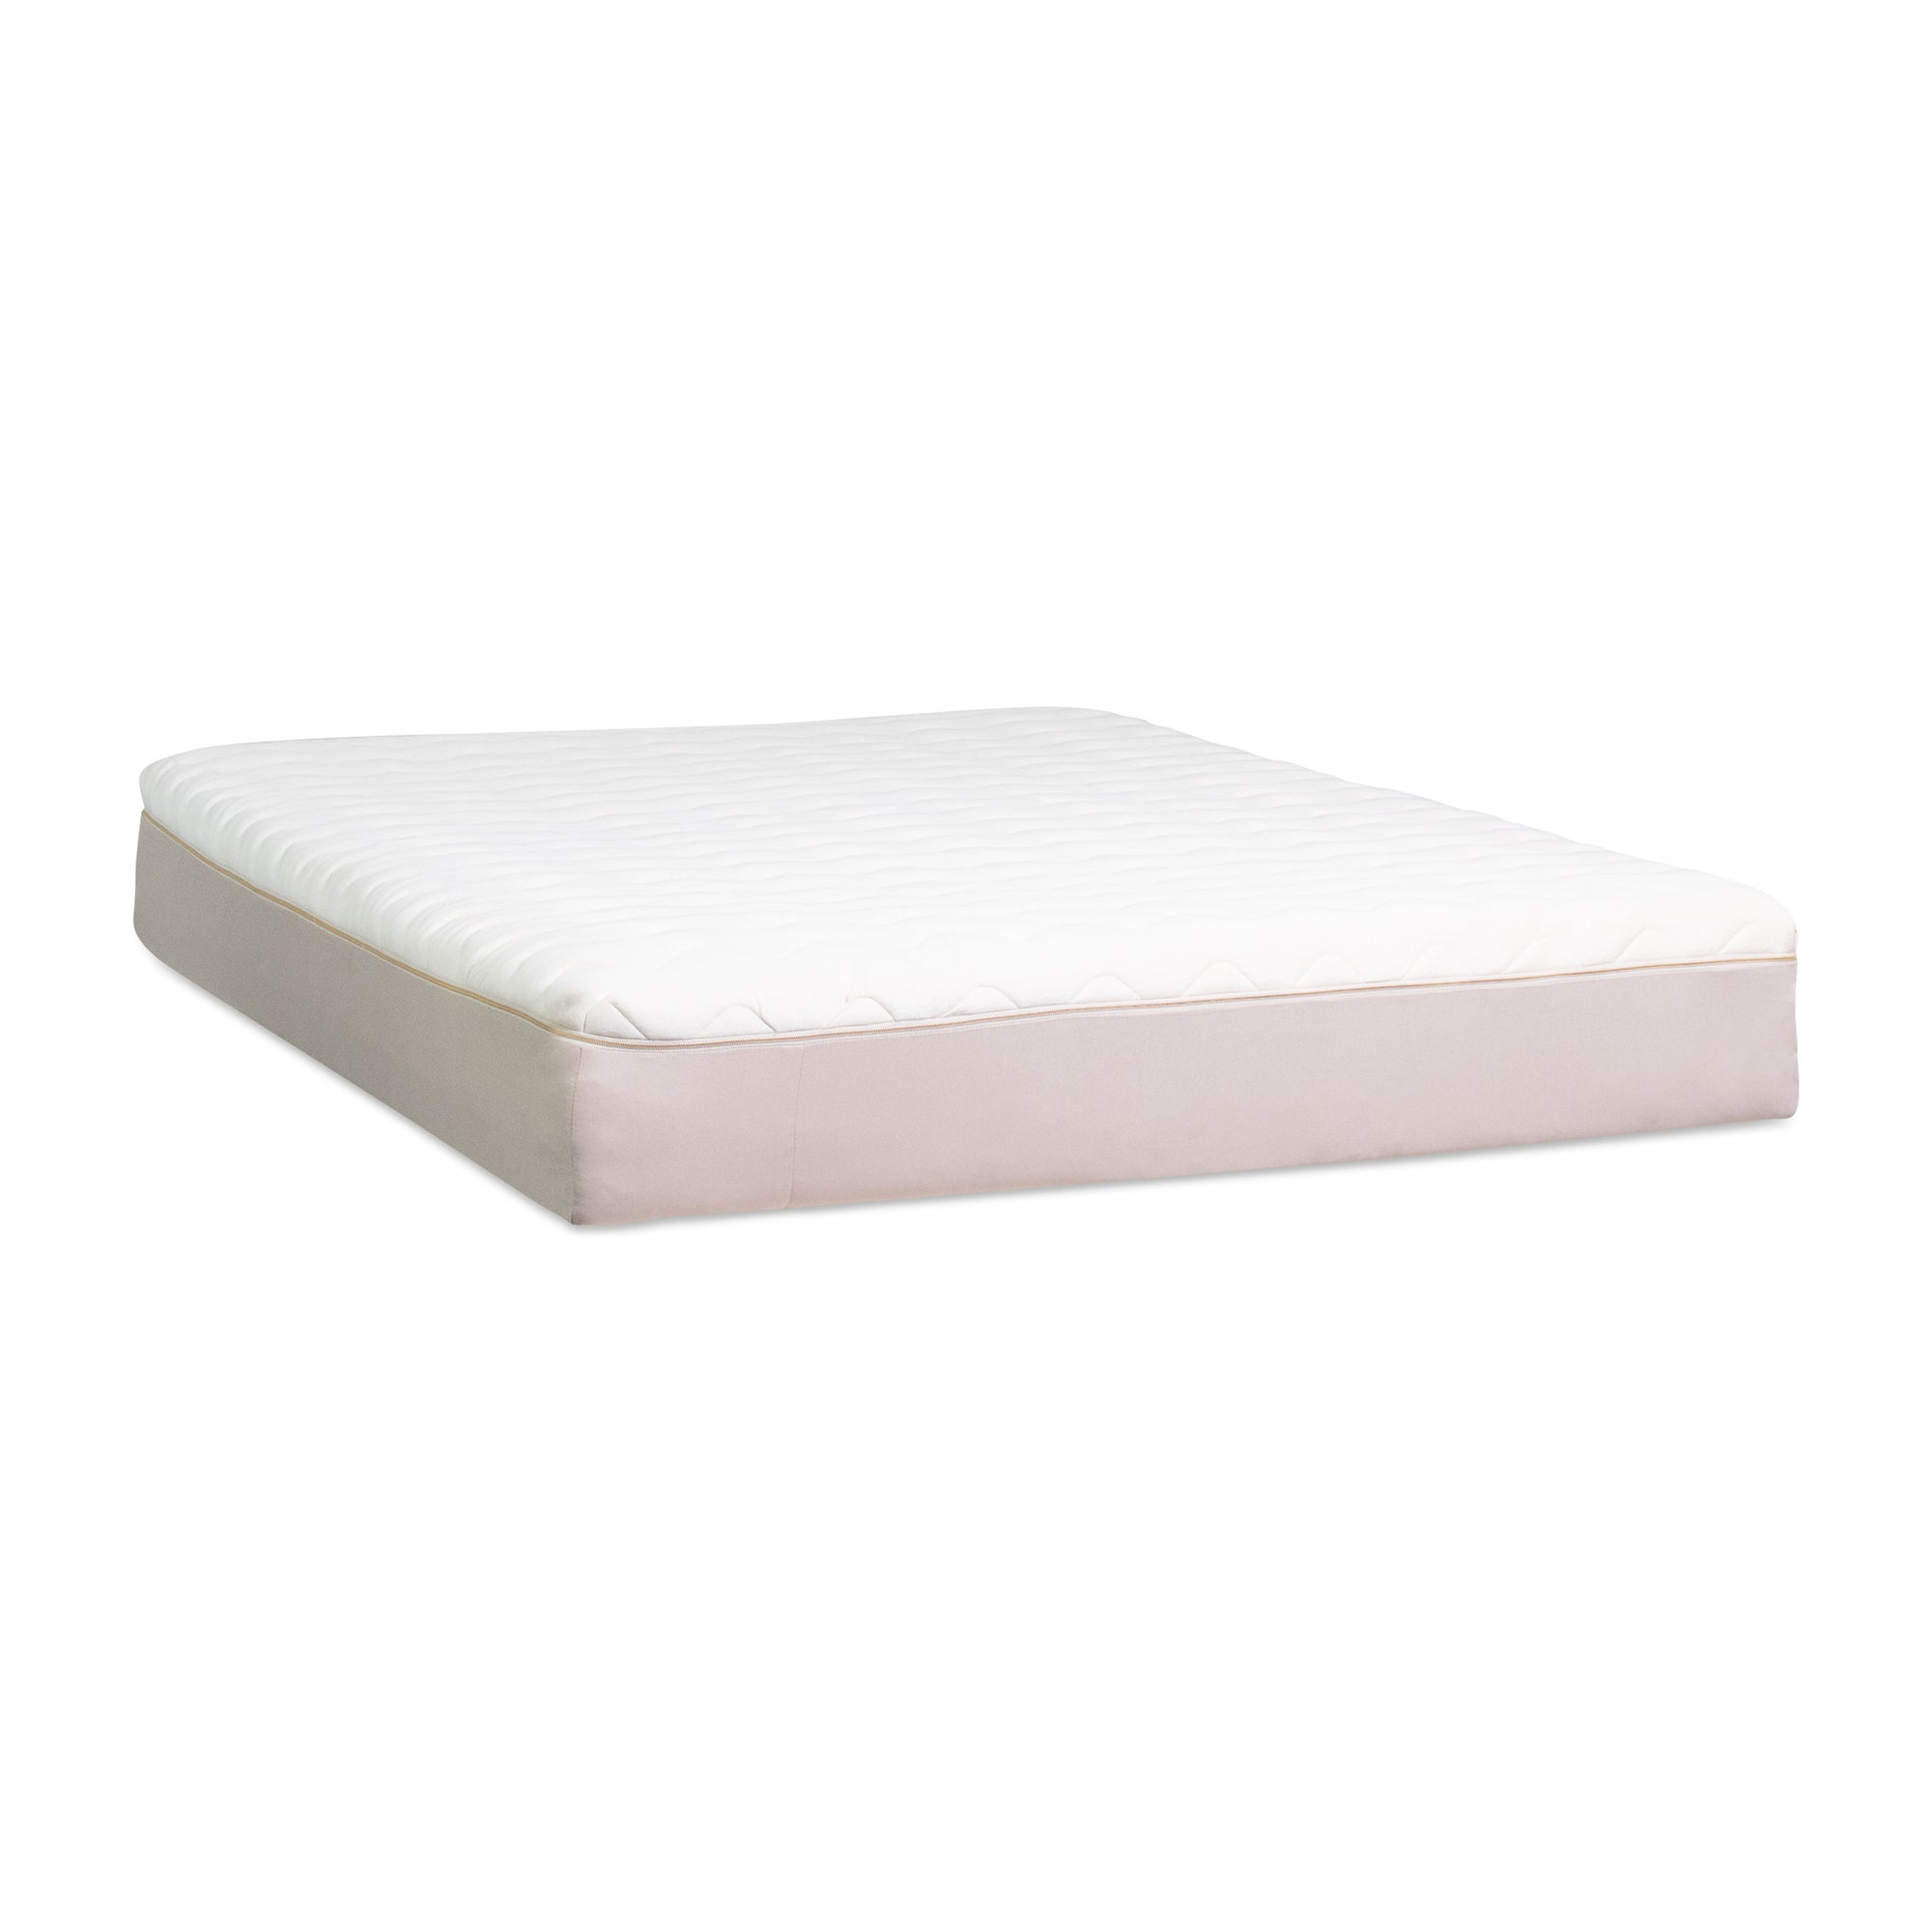 Hevean 10 Organic Mattress